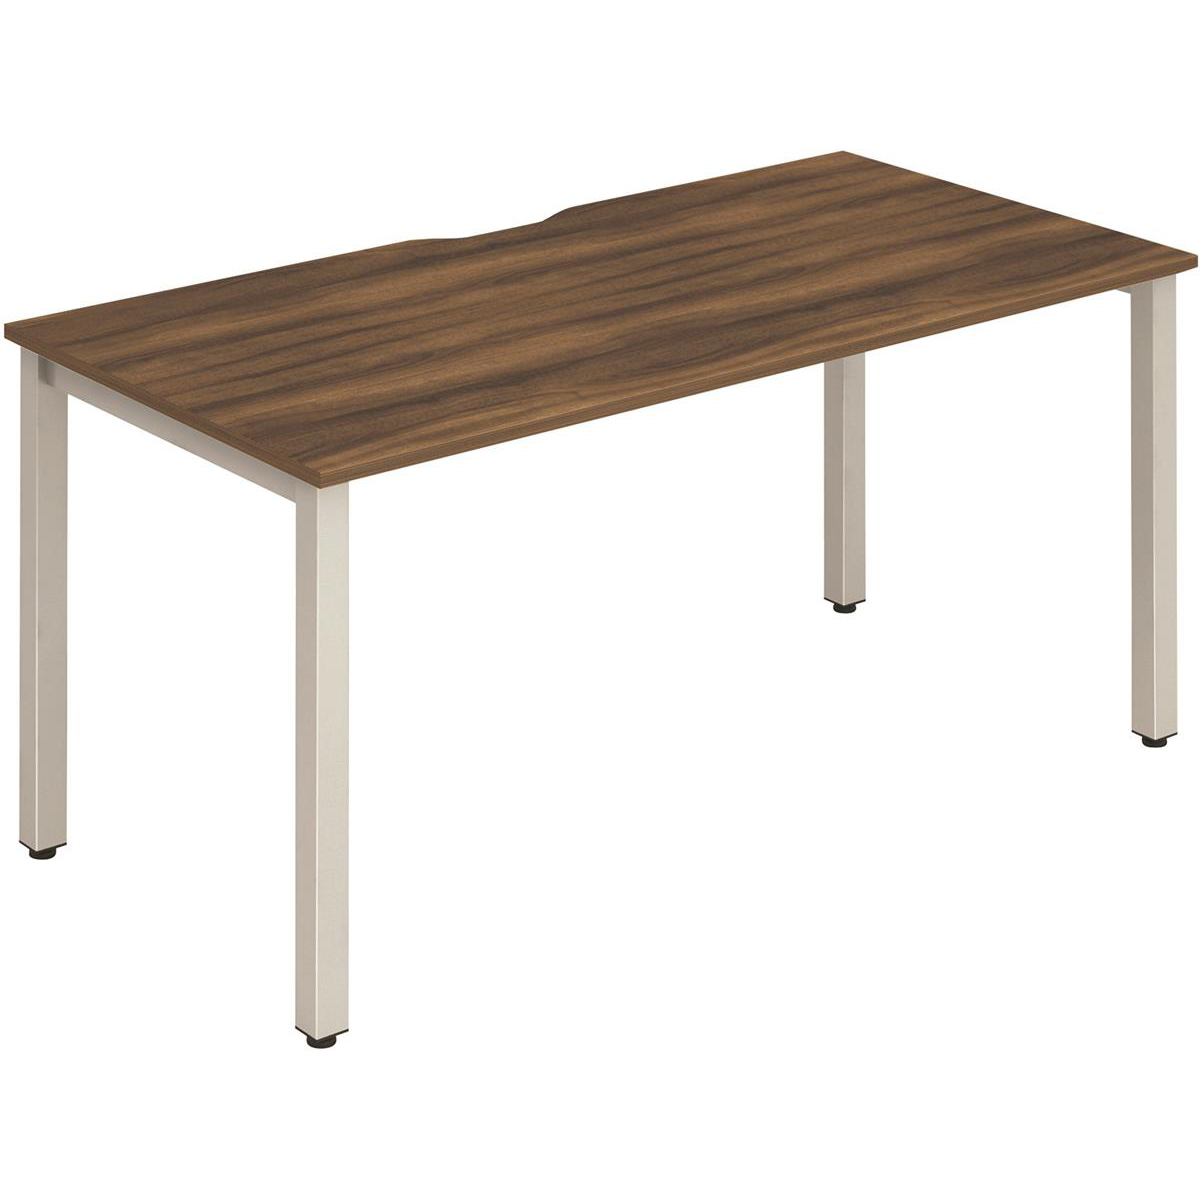 Trexus Bench Desk Individual Silver Leg 1400x800mm Walnut Ref BE134